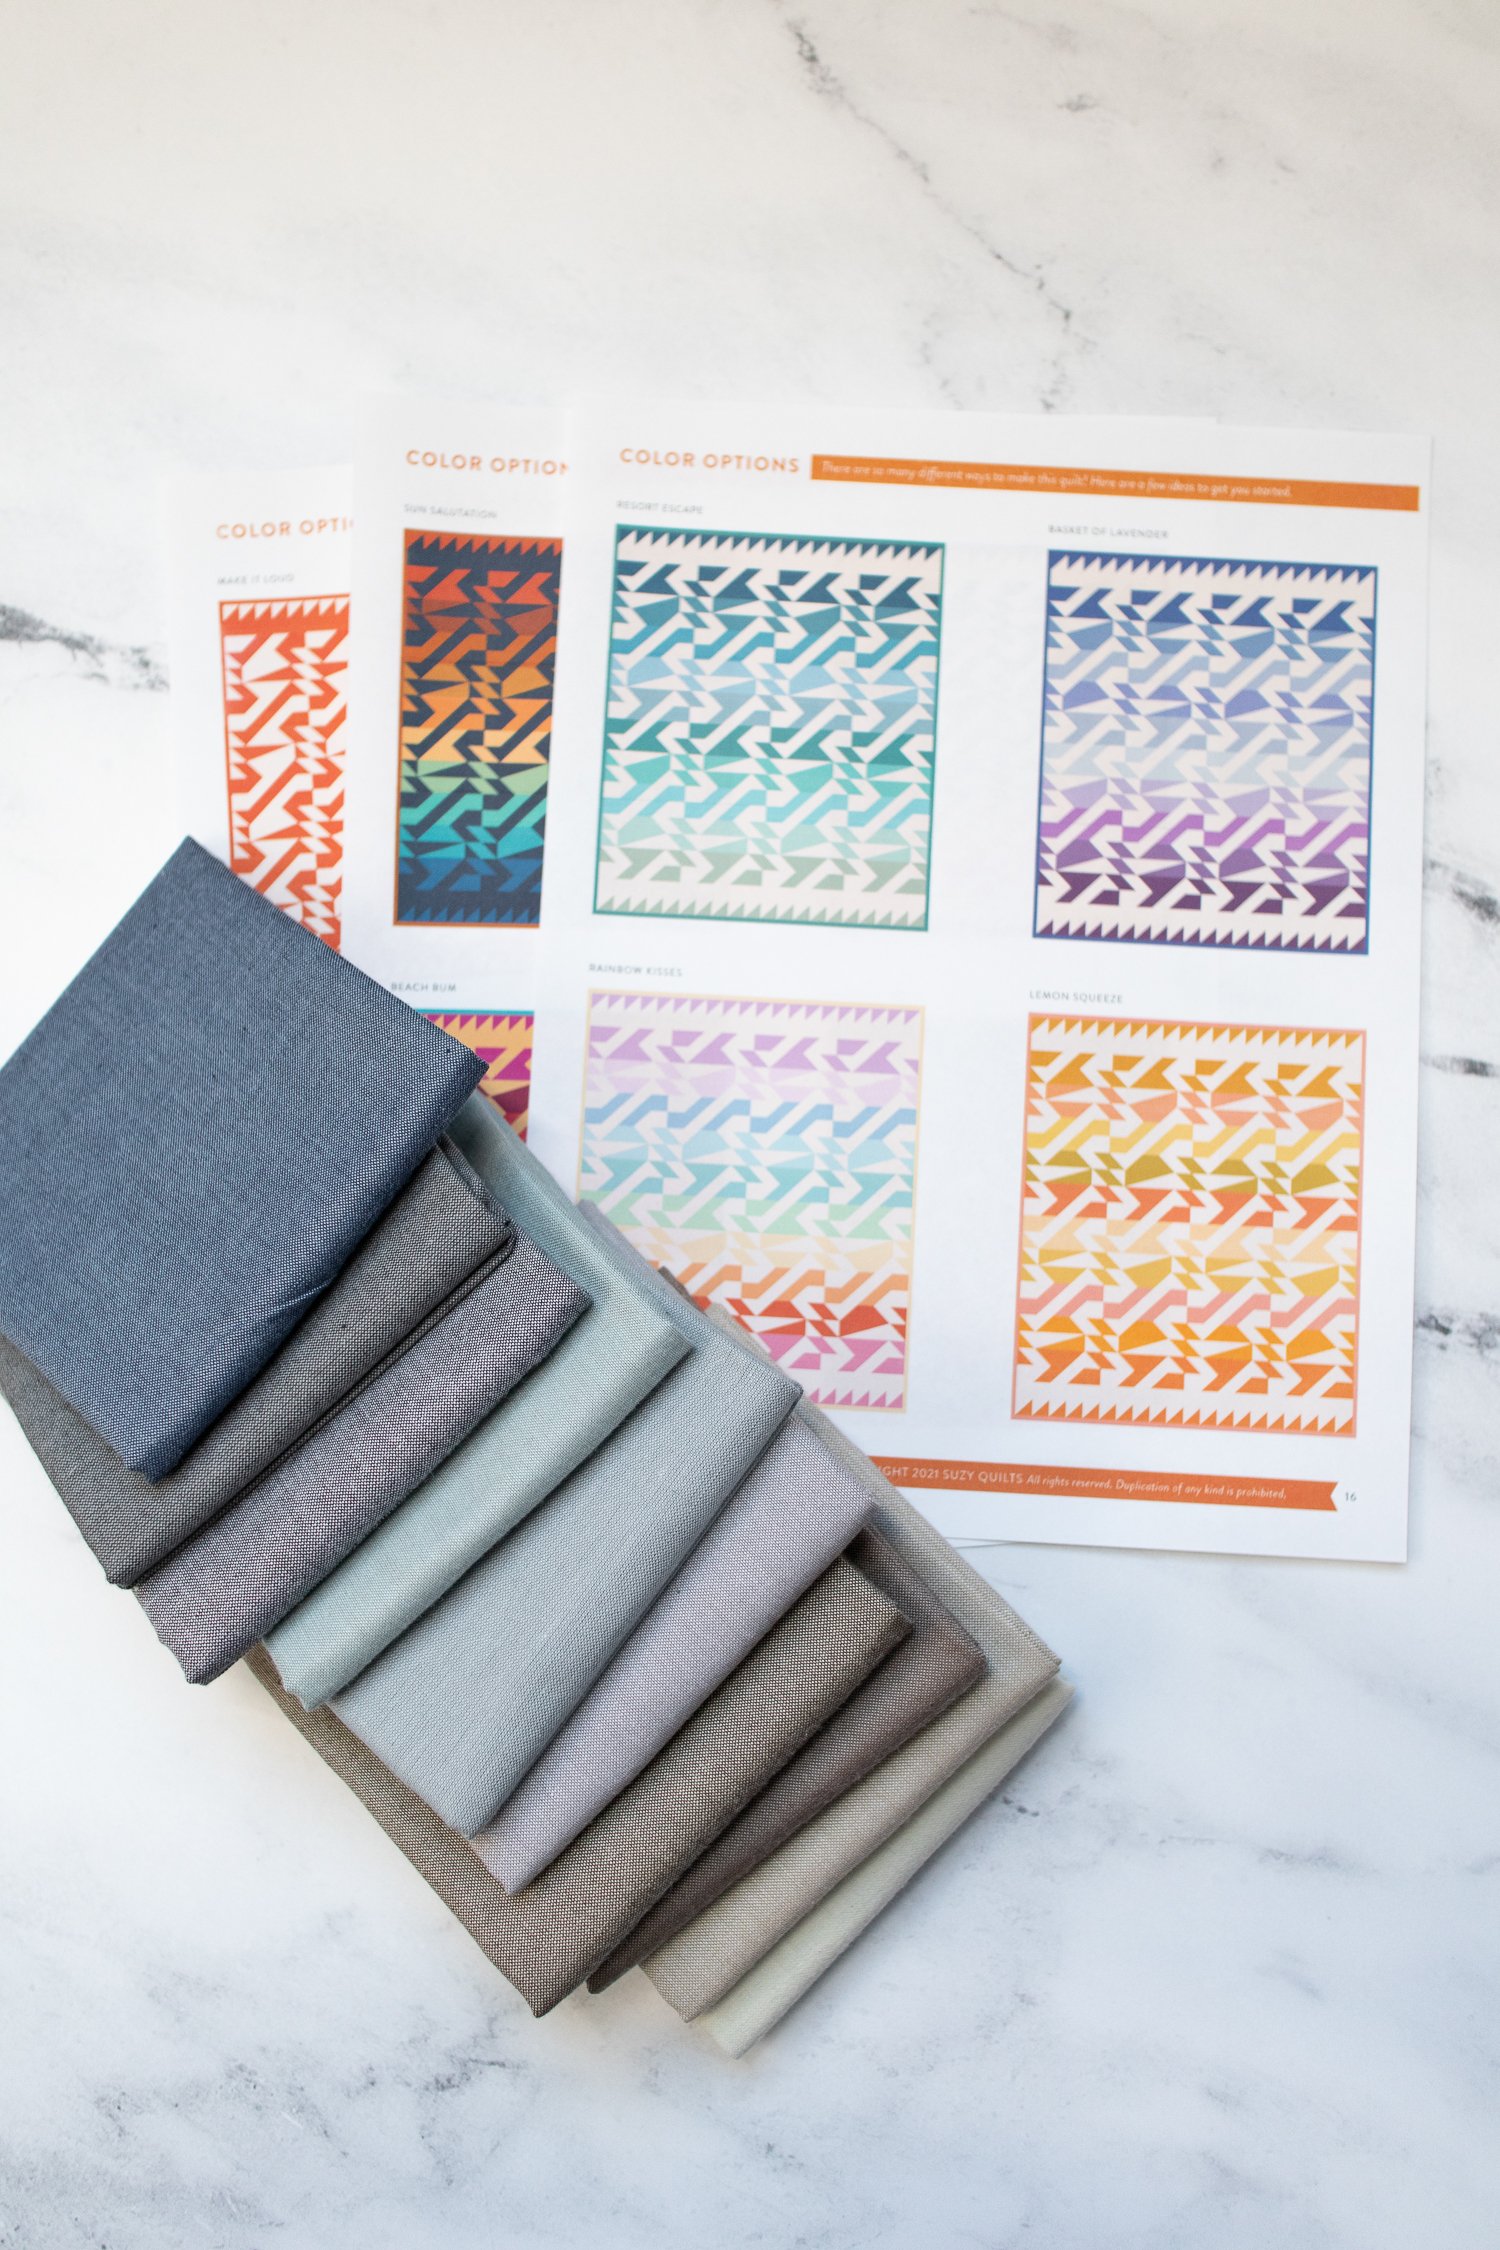 Read tips for how to read a quilt pattern from start to finish, and gain the confidence to understand all the steps and make your own quilt! Seven step that are helpful to beginner quilters and experienced quilters, with links to resources that will help you quilt like a pro in no time. suzyquilts.com #quilting #sewingdiy